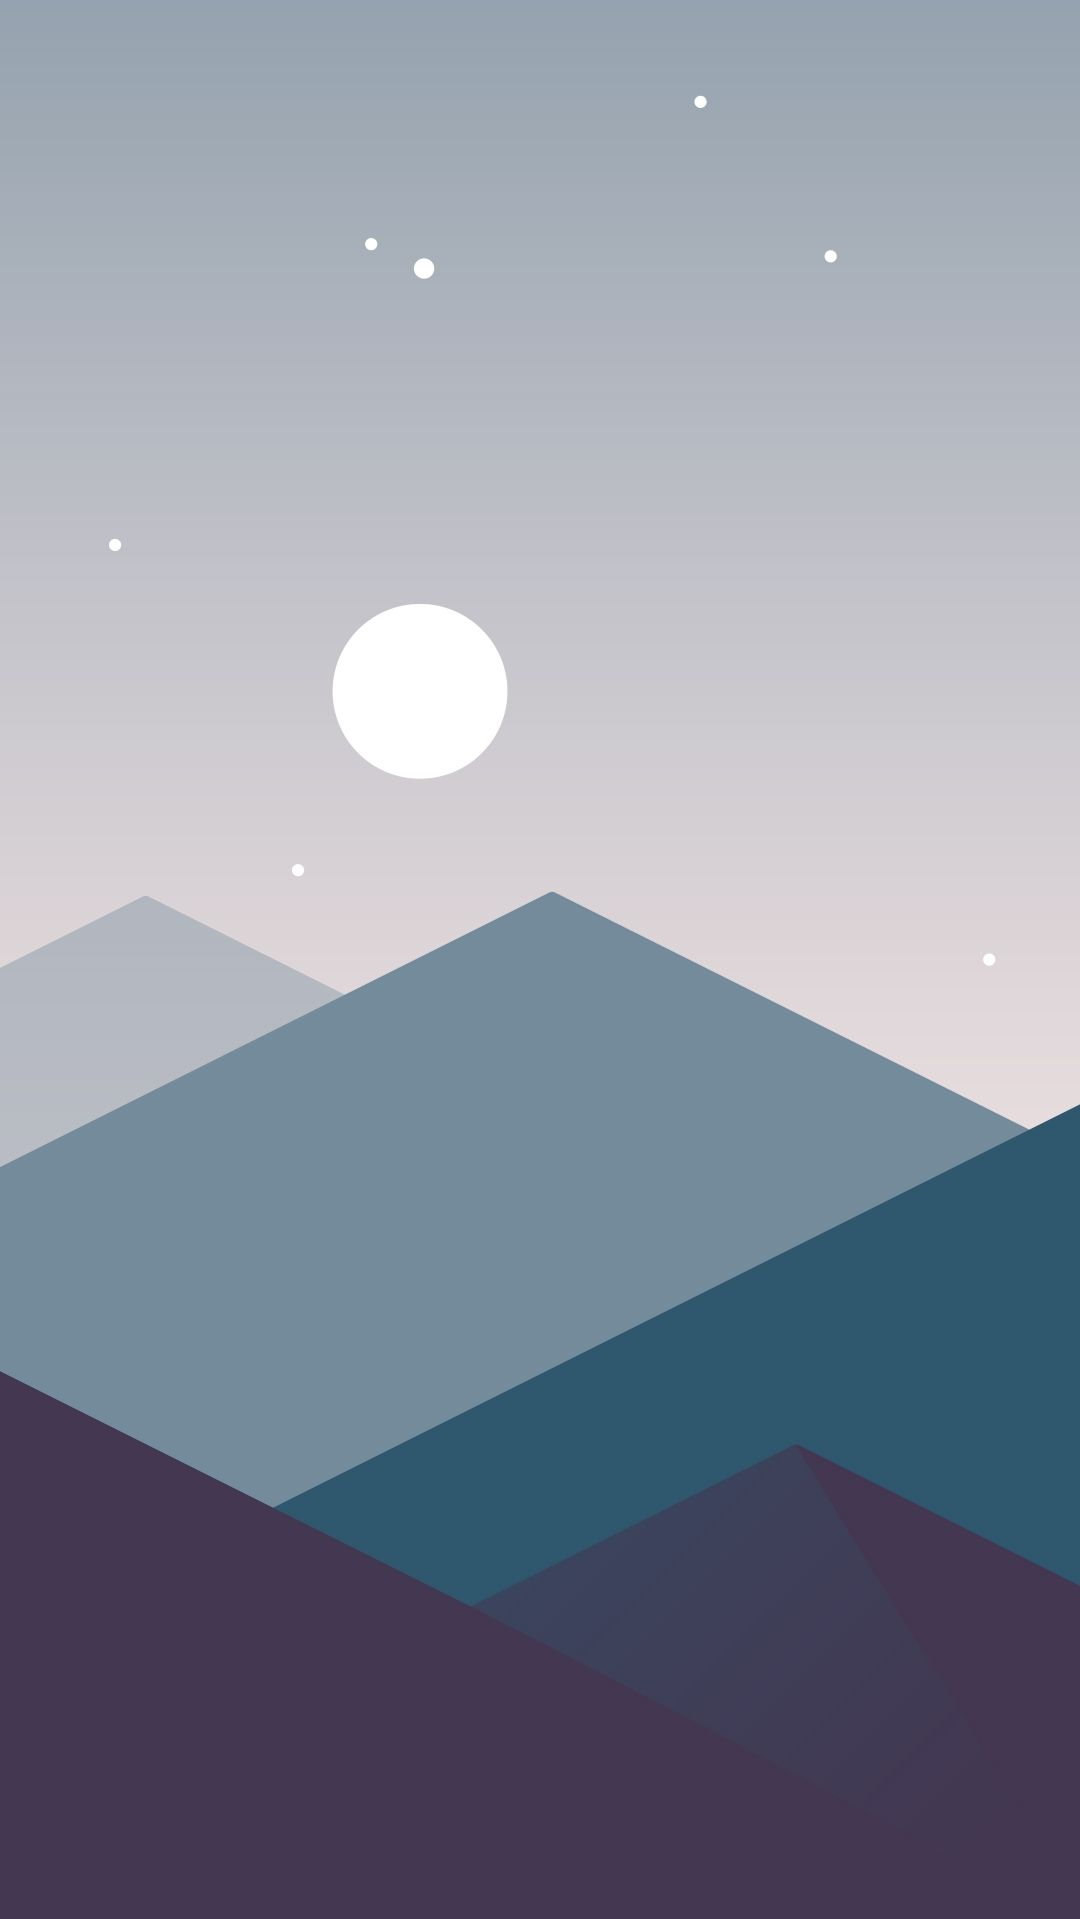 Minimalistic Mountains Night Moon Iphone Wallpaper Minimalist Wallpaper Easy Canvas Art Painting Art Projects